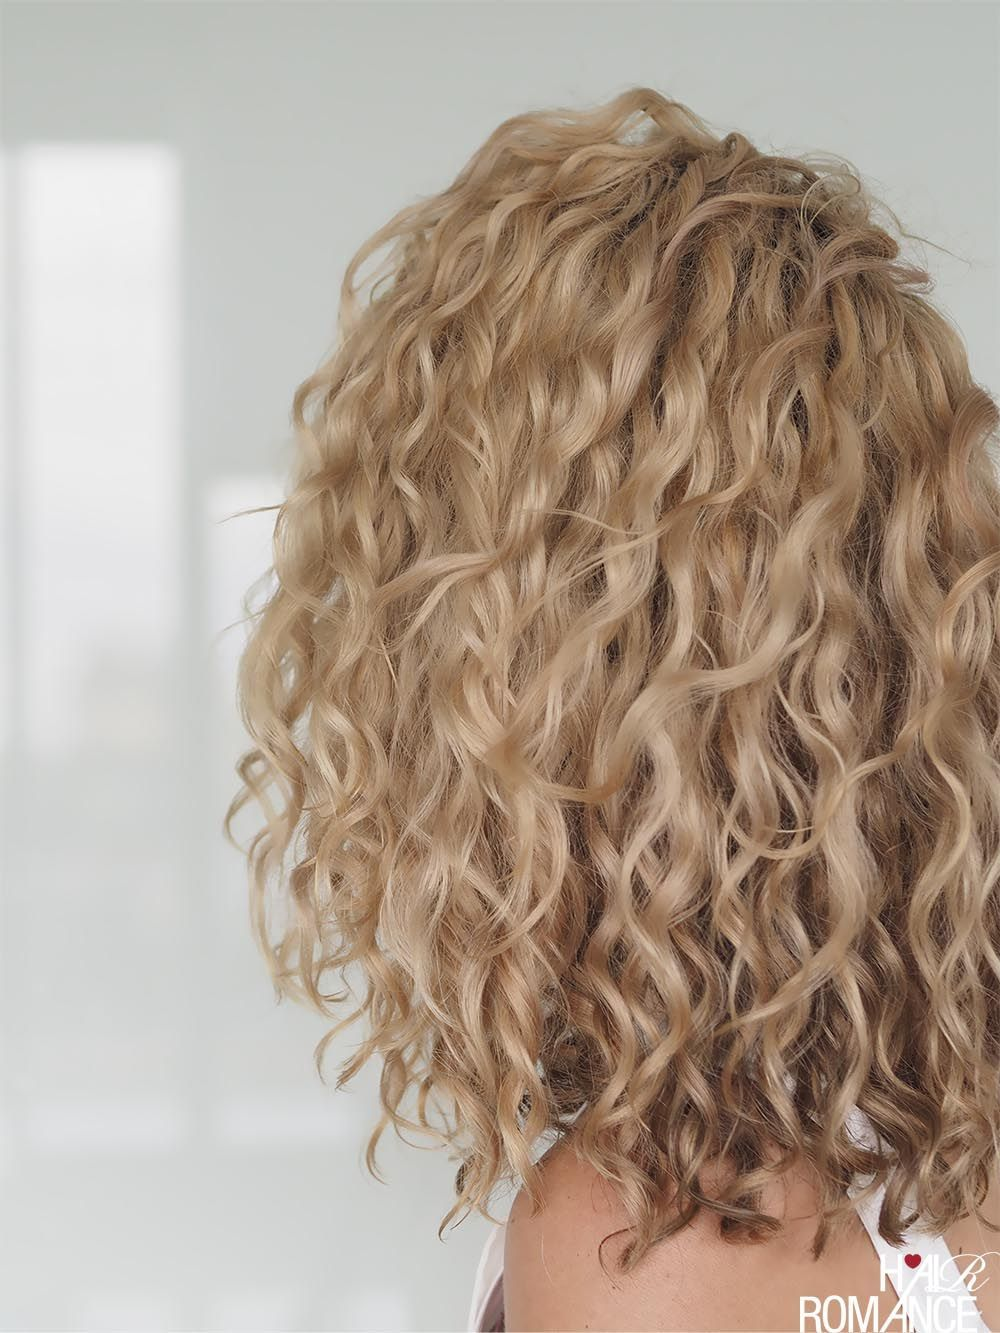 The Best Haircuts For Curly Hair Hair Romance Blondecurlyhair In 2020 Haircuts For Curly Hair Curly Hair Styles Naturally Curly Hair Styles